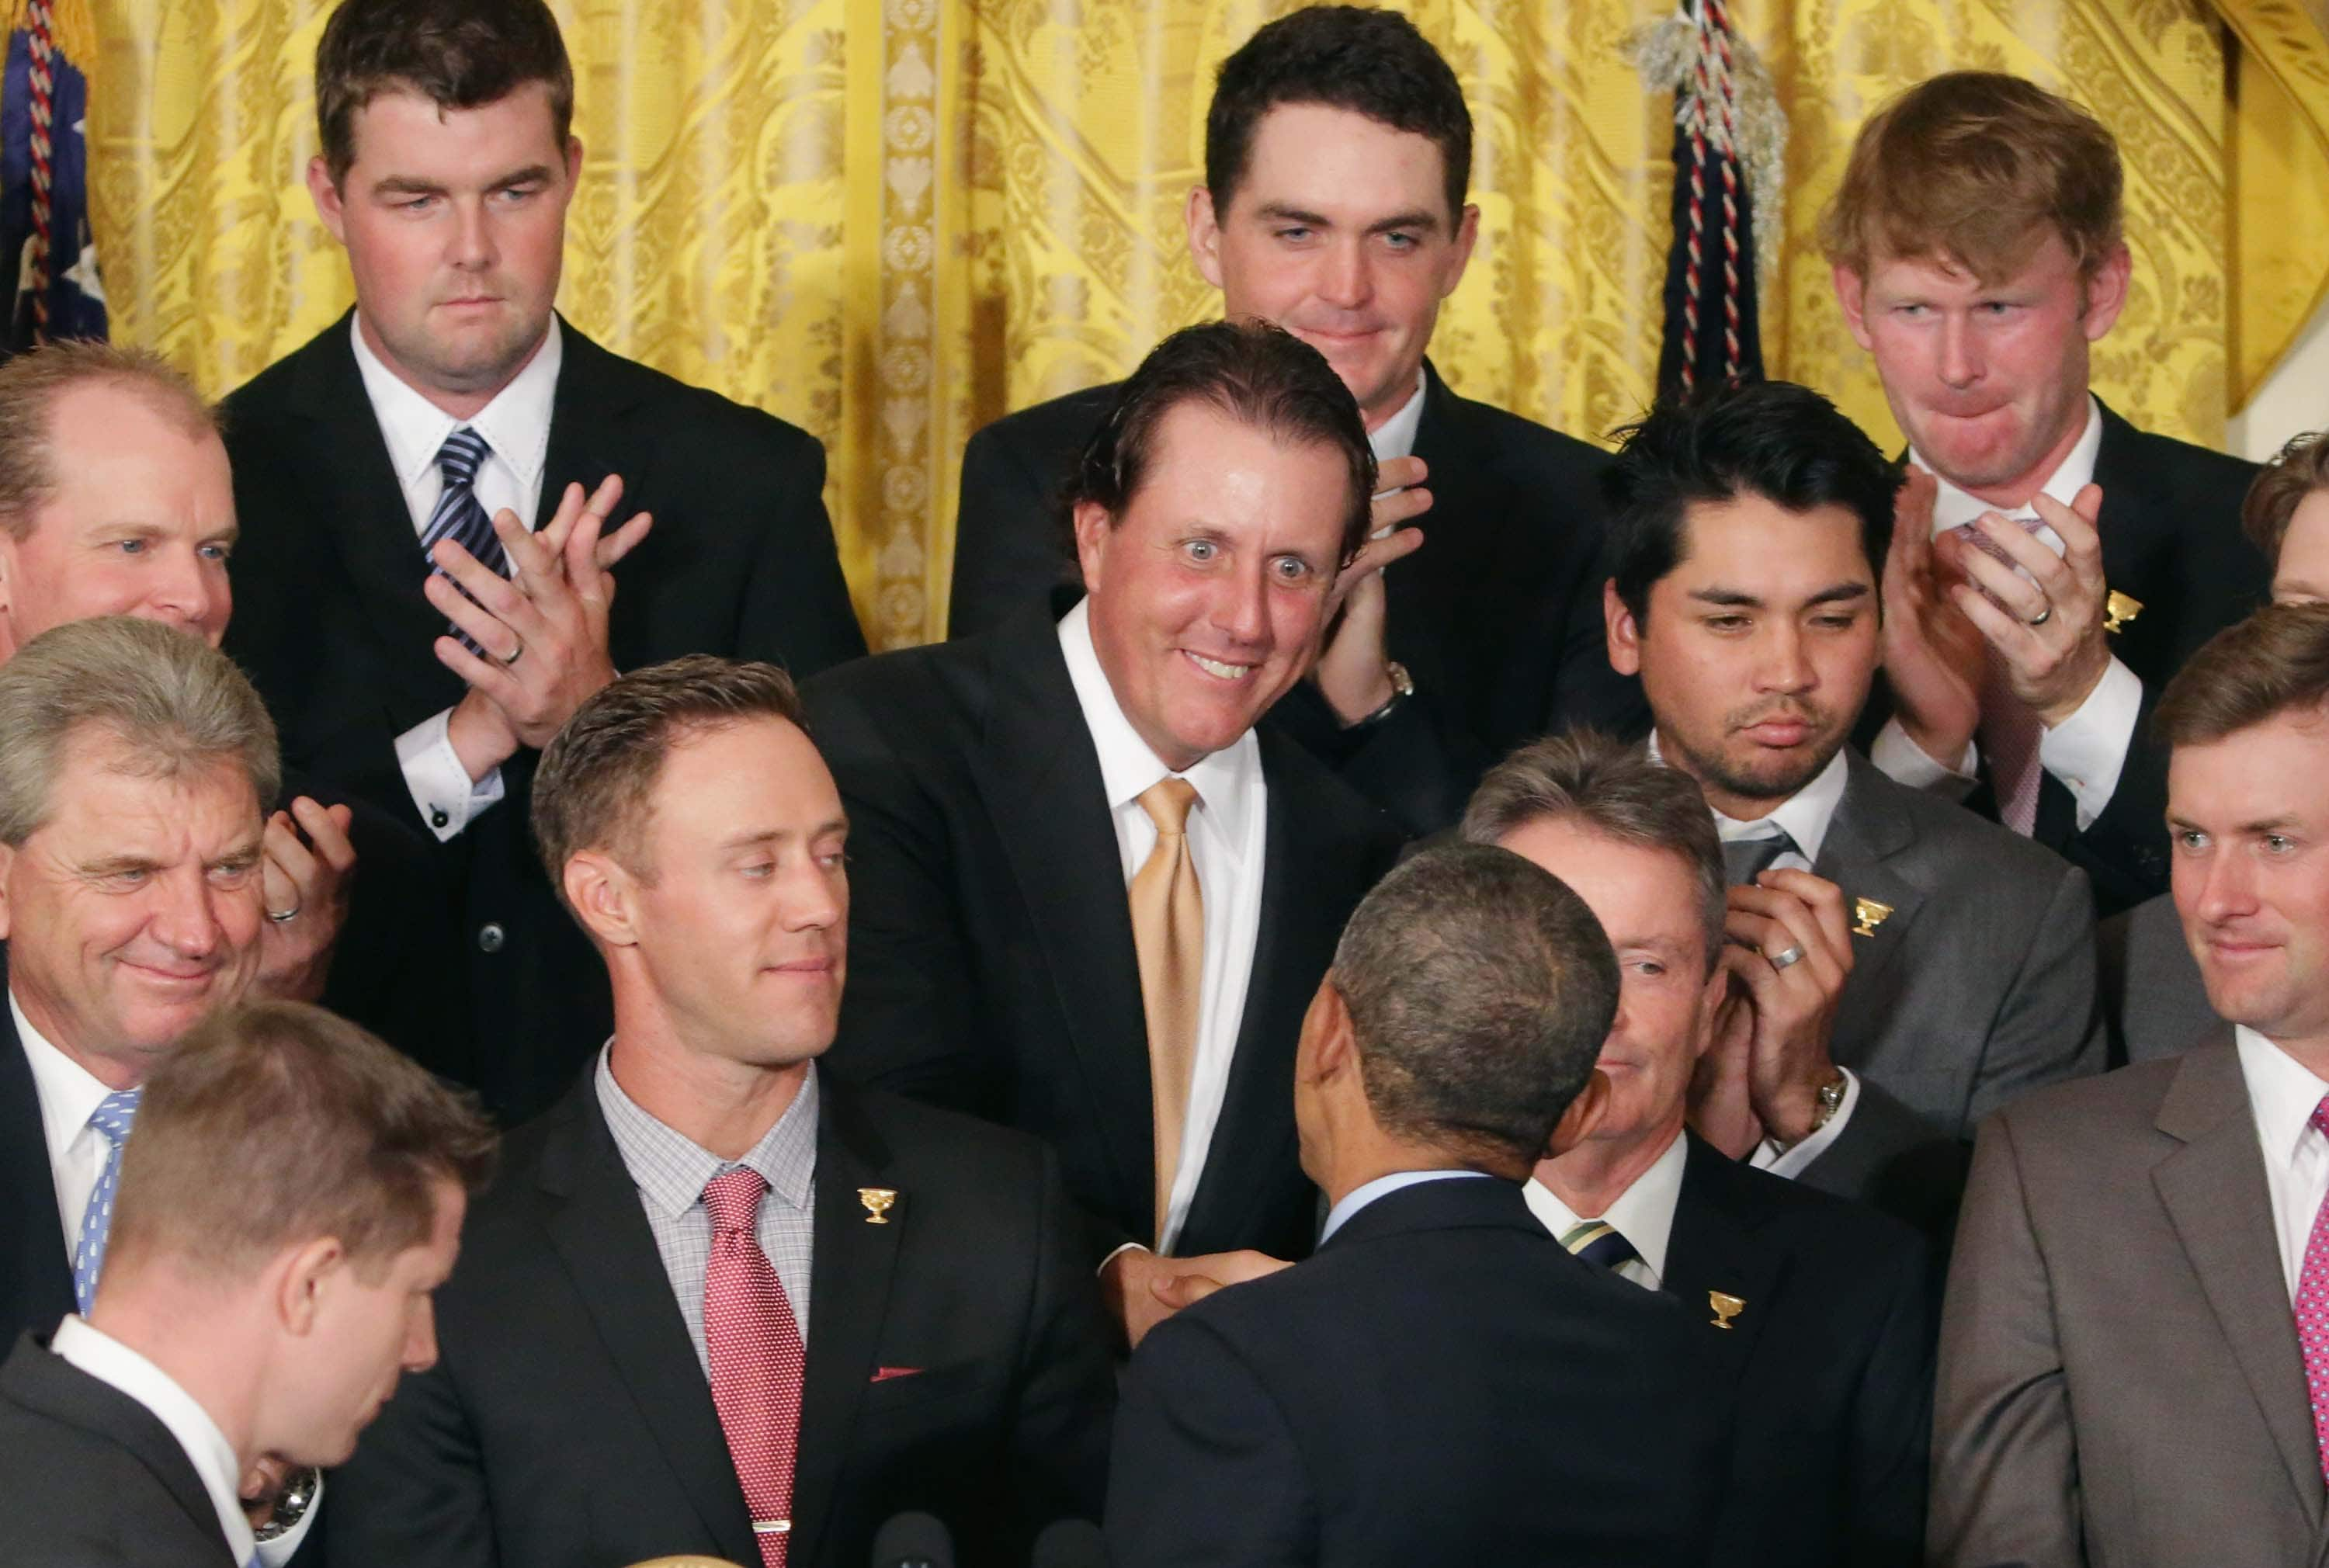 President Obama and Phil Mickelson